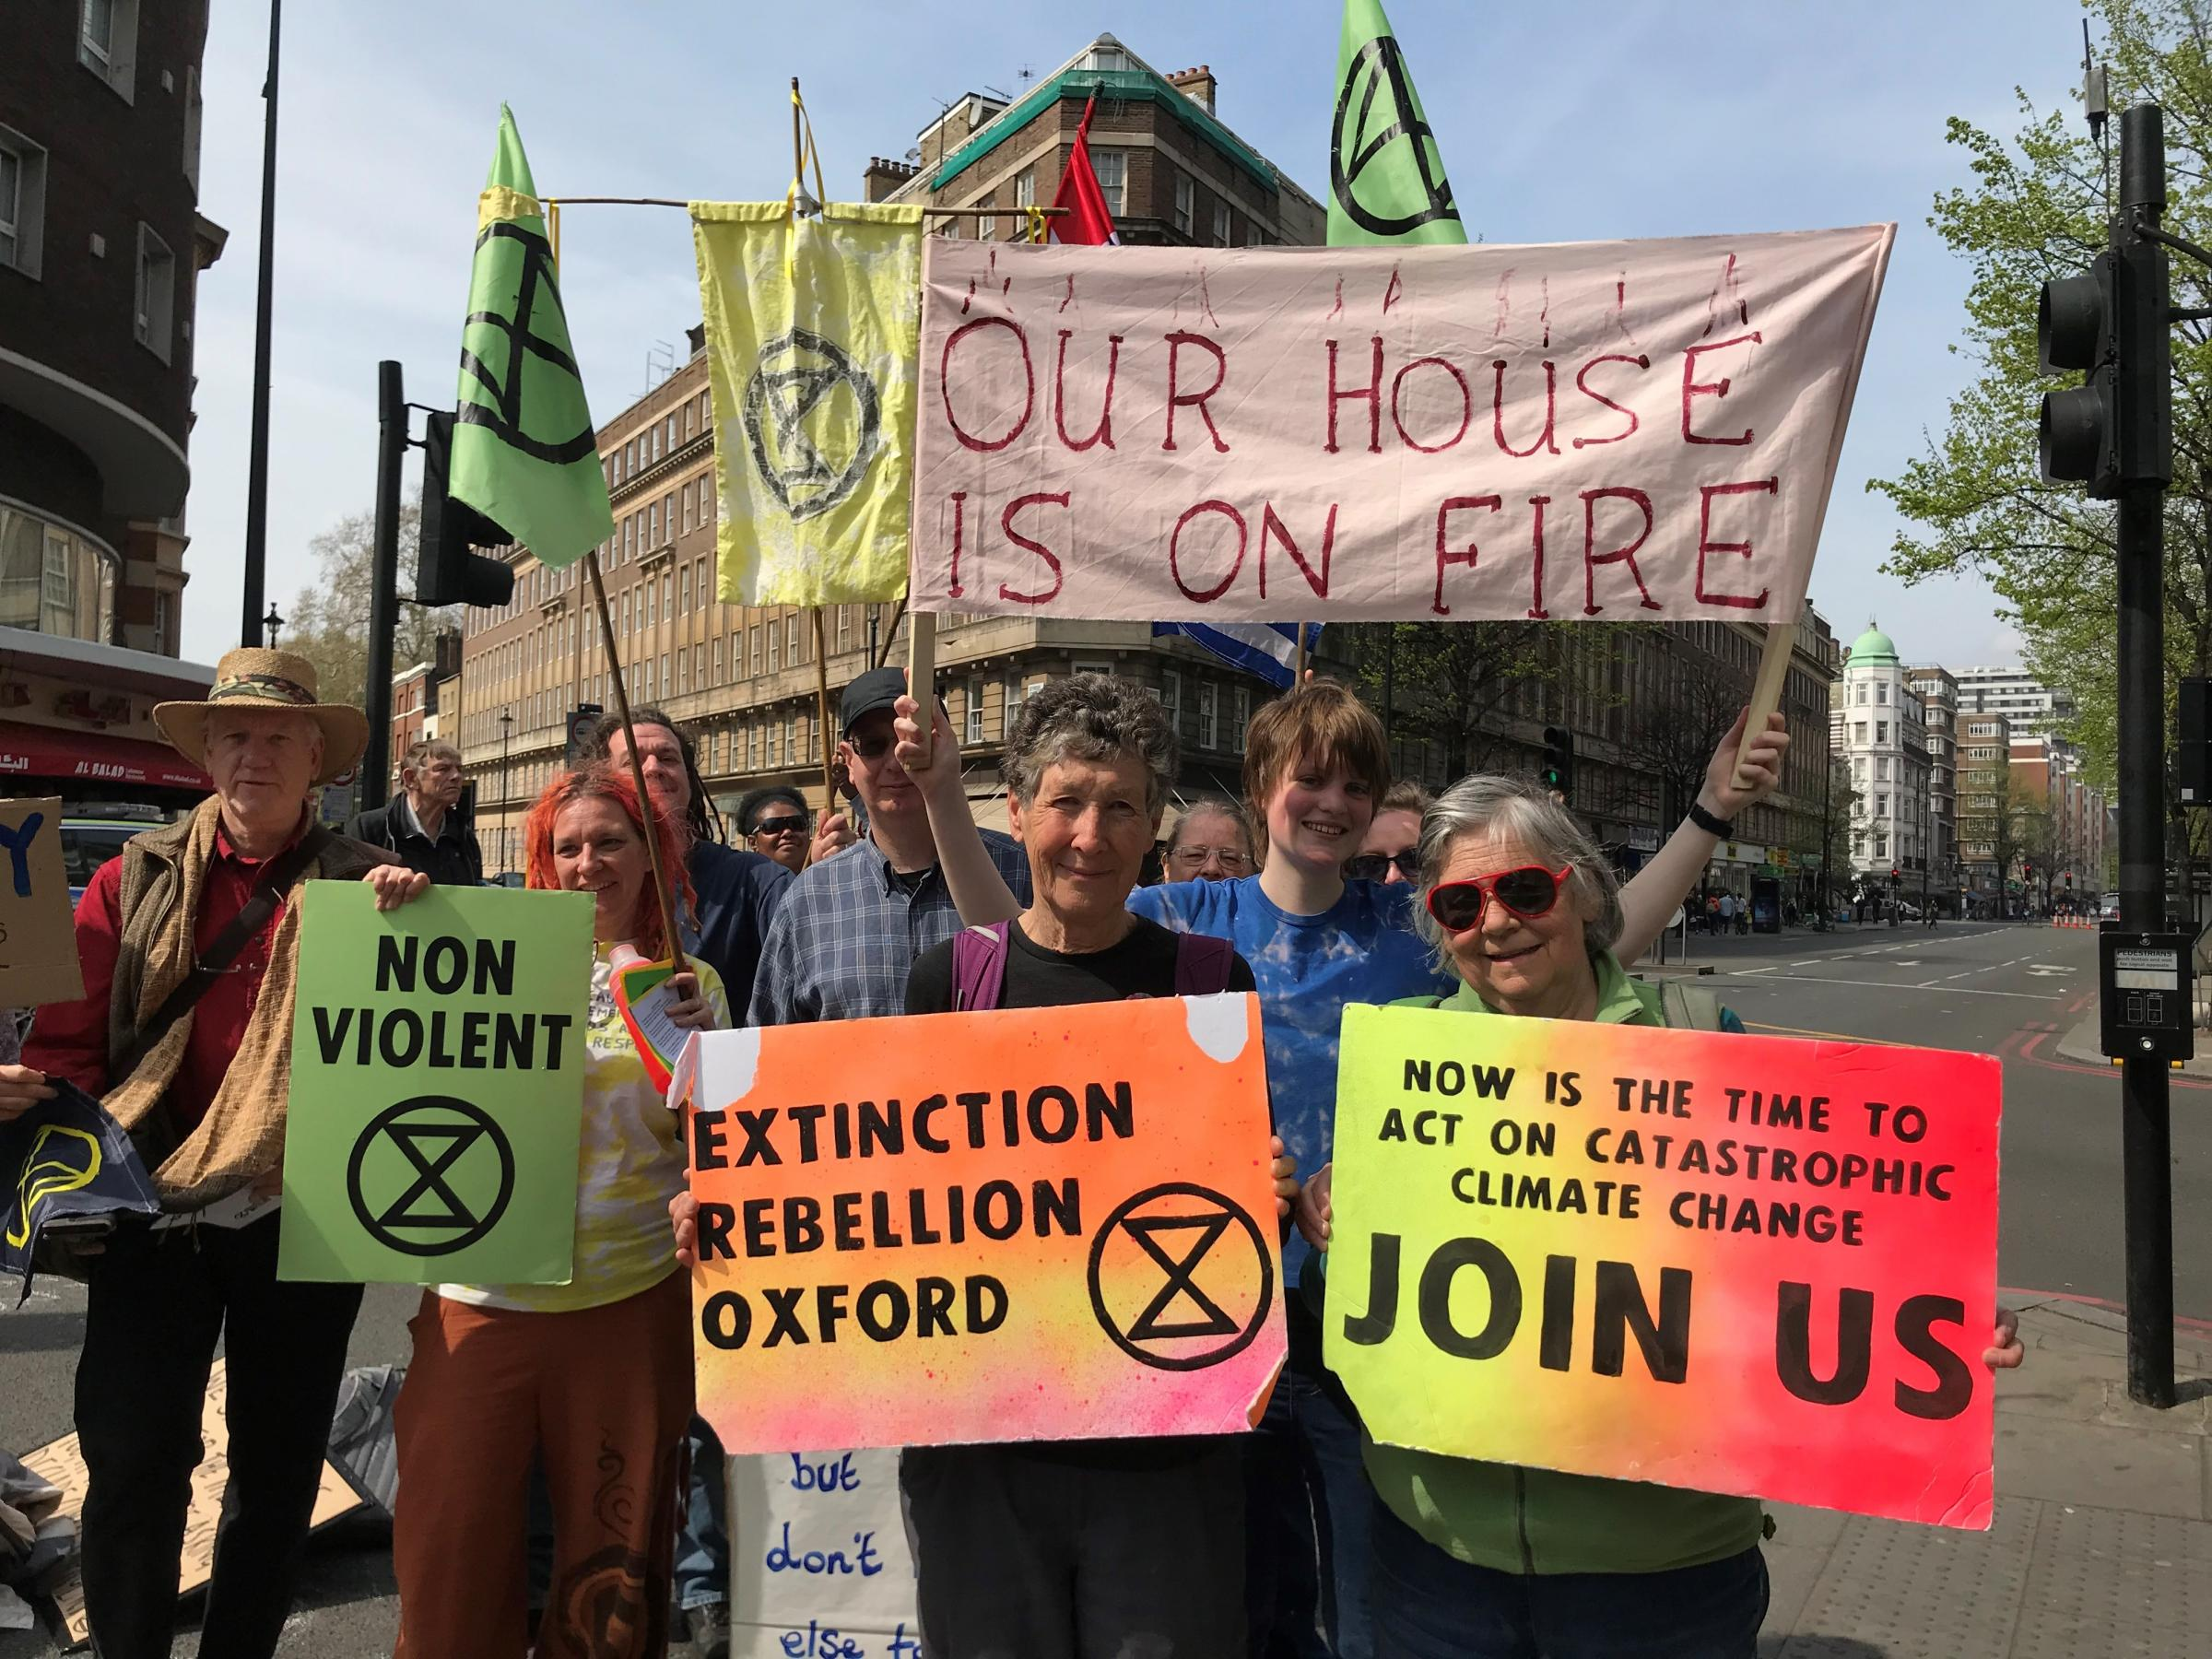 Oxford activists Mary Gill ('Extinction Rebellion Oxford' sign) and Margaret Mukherjee (red glasses) have been arrested. Picture: Zuhura Plummer